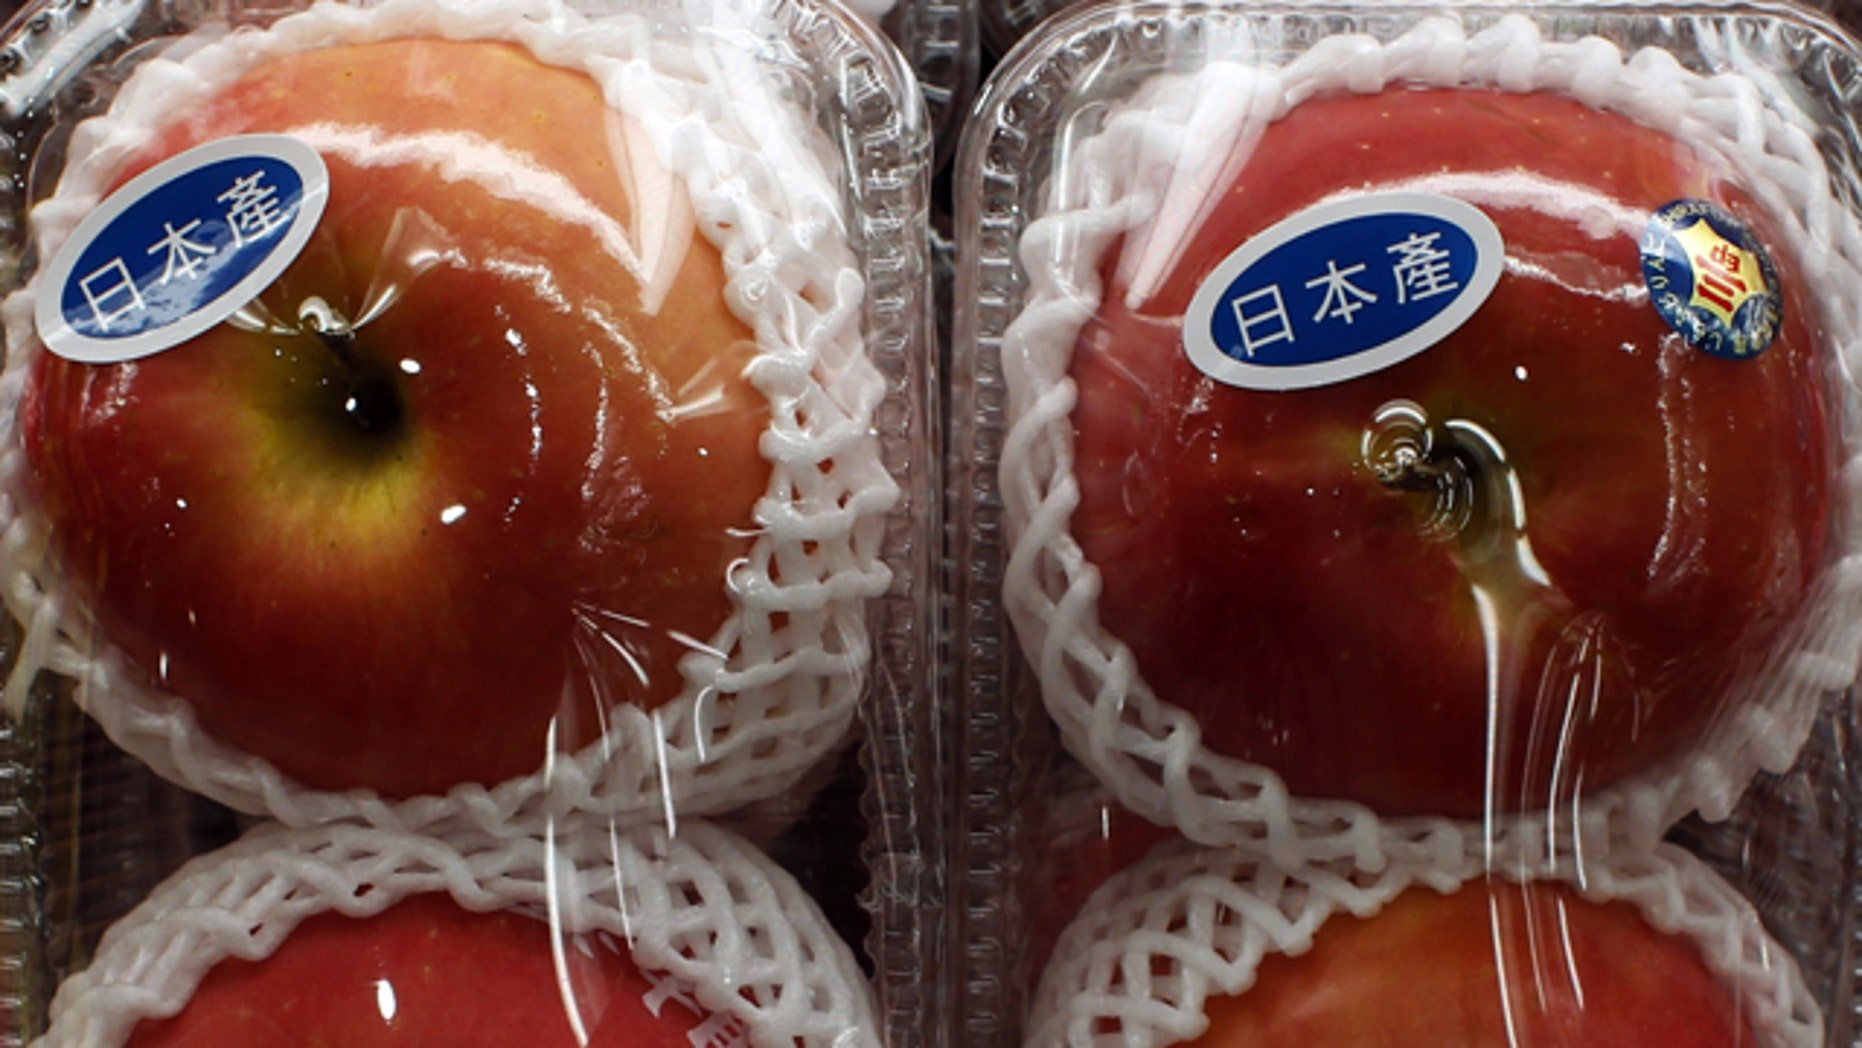 """Apples with """"Produced in Japan"""" stickers are seen at a Japanese supermarket in Hong Kong March 21, 2011. The World Health Organization said on Monday that the detection of radiation in food after an earthquake damaged a Japanese nuclear plant was a more serious problem than it had first expected. The Hong Kong Government on Monday has given assurances that the territory's food and water supplies have not been contaminated with radiation from Japan, according to local media."""